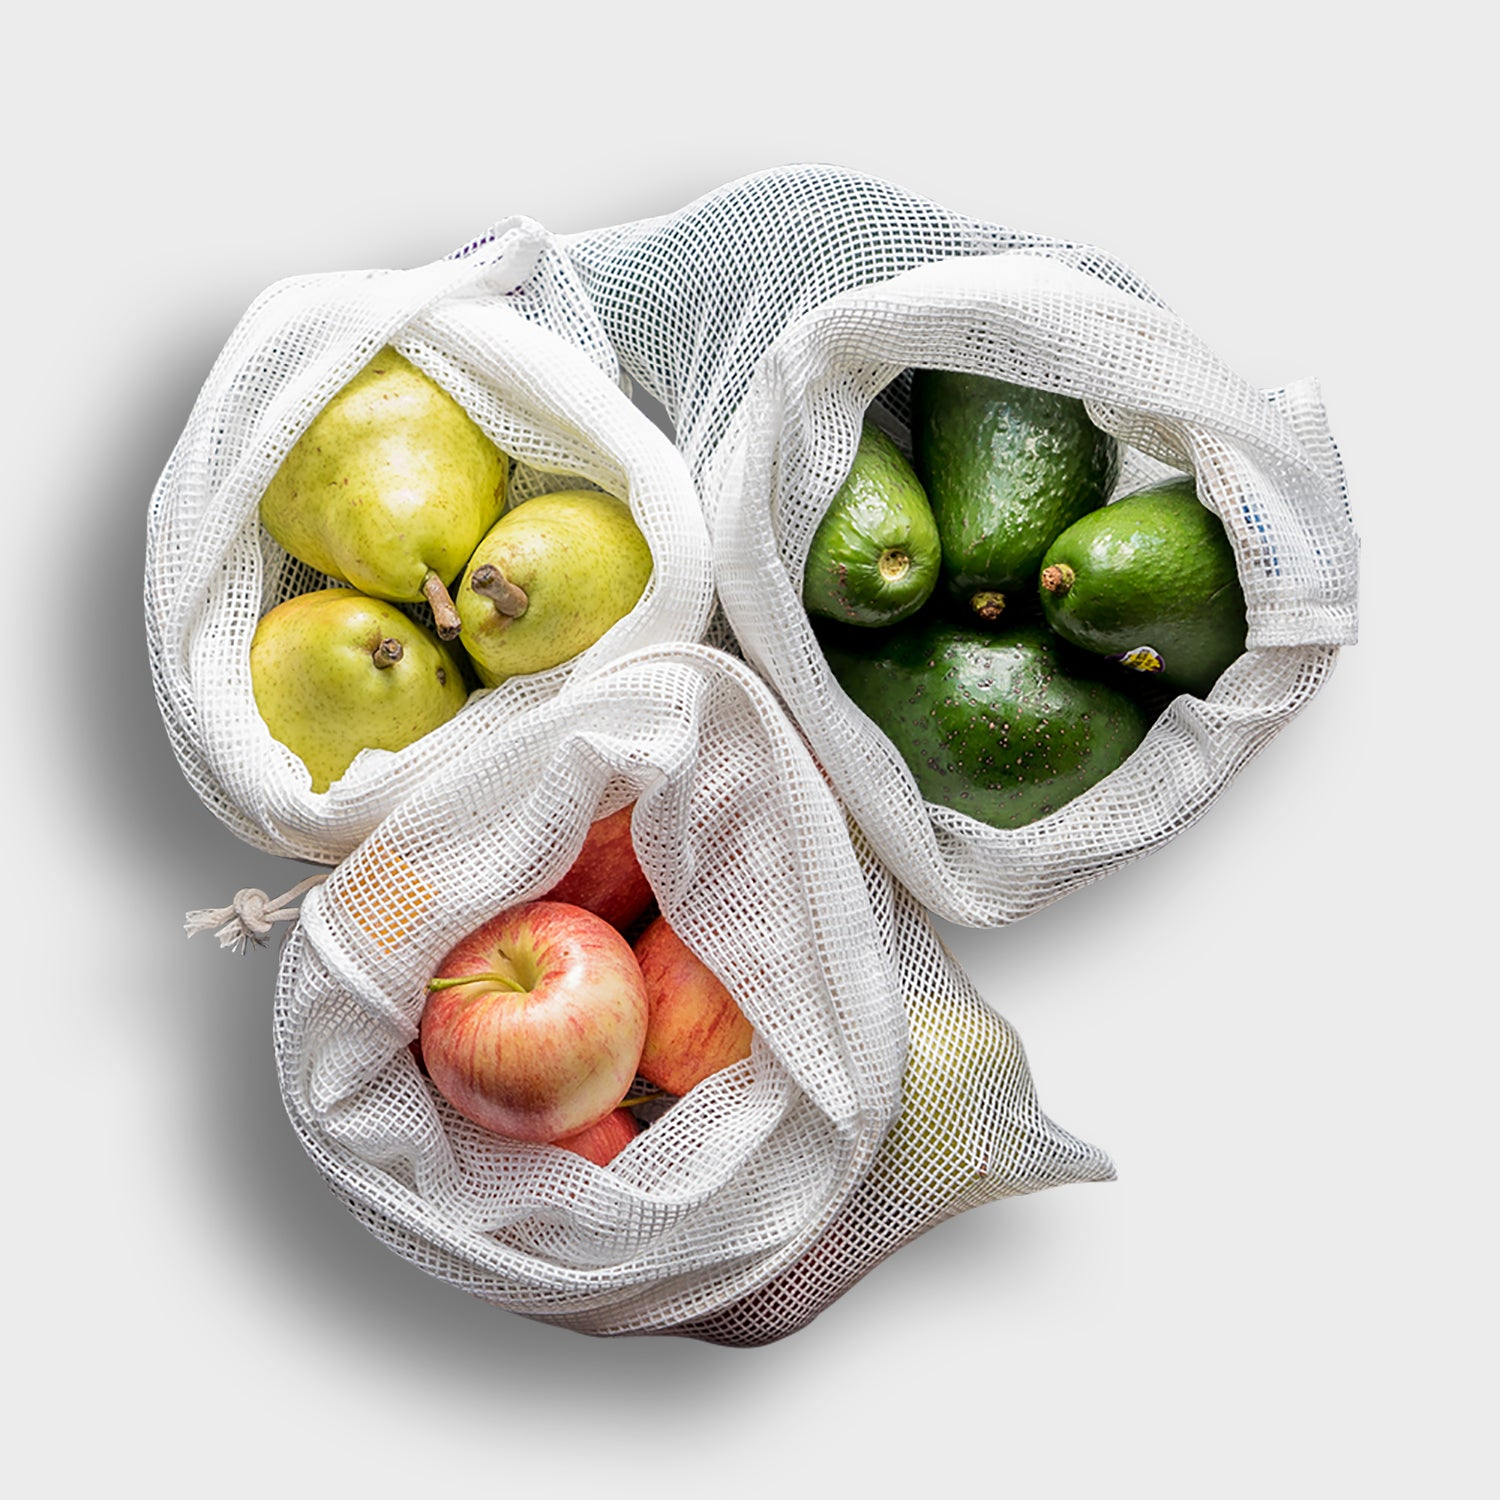 Bundle of three produce bags, containing pears, avocados and apples